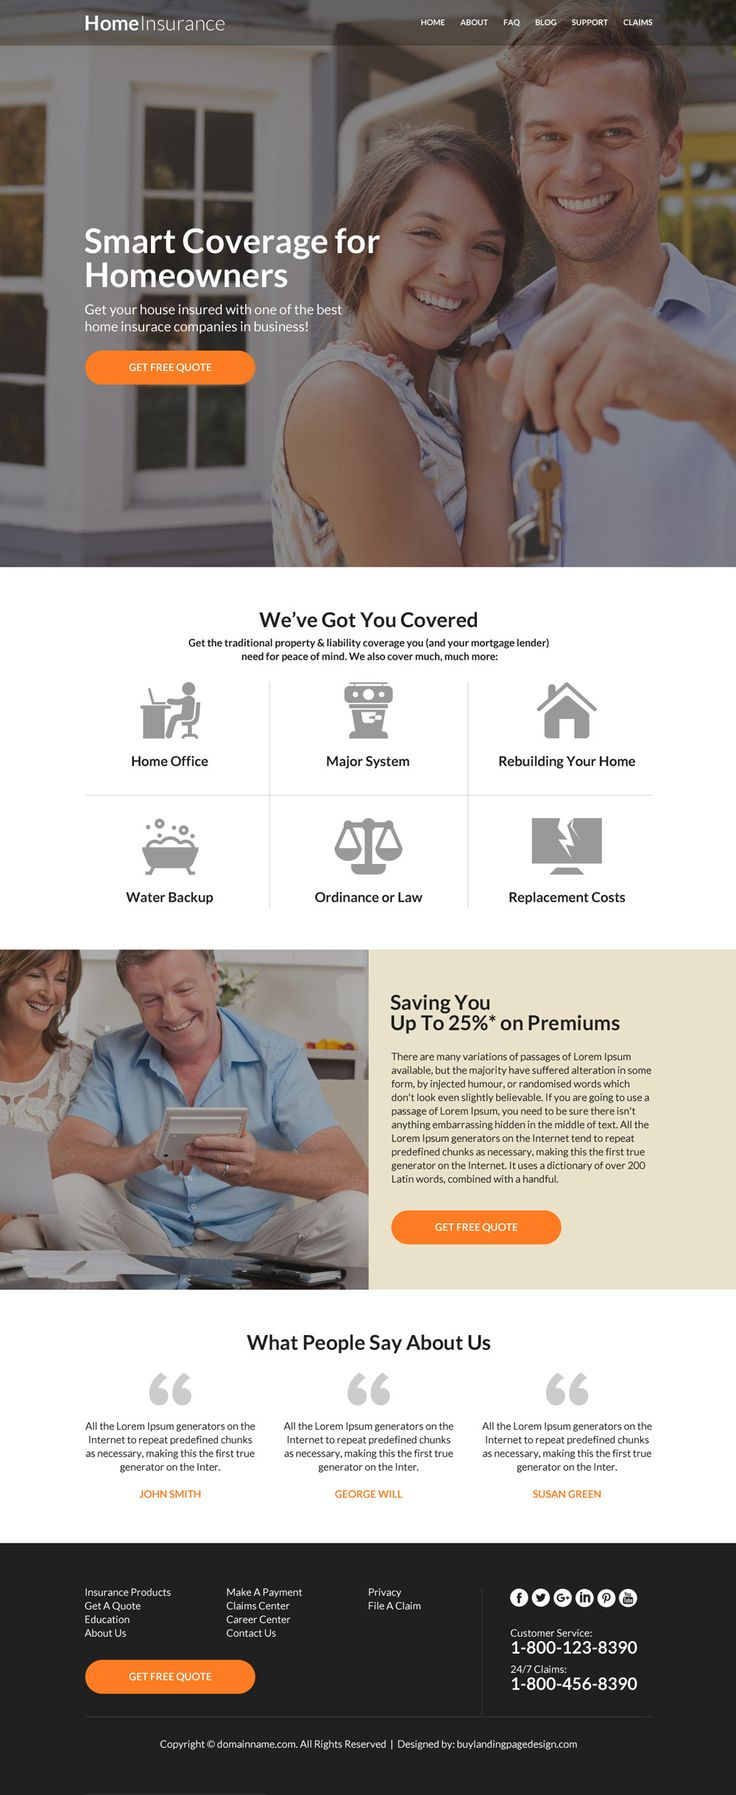 Do You Own A Homeowners Insurance Company In 2020 Homeowners Insurance Insurance Website Homeowners Insurance Coverage